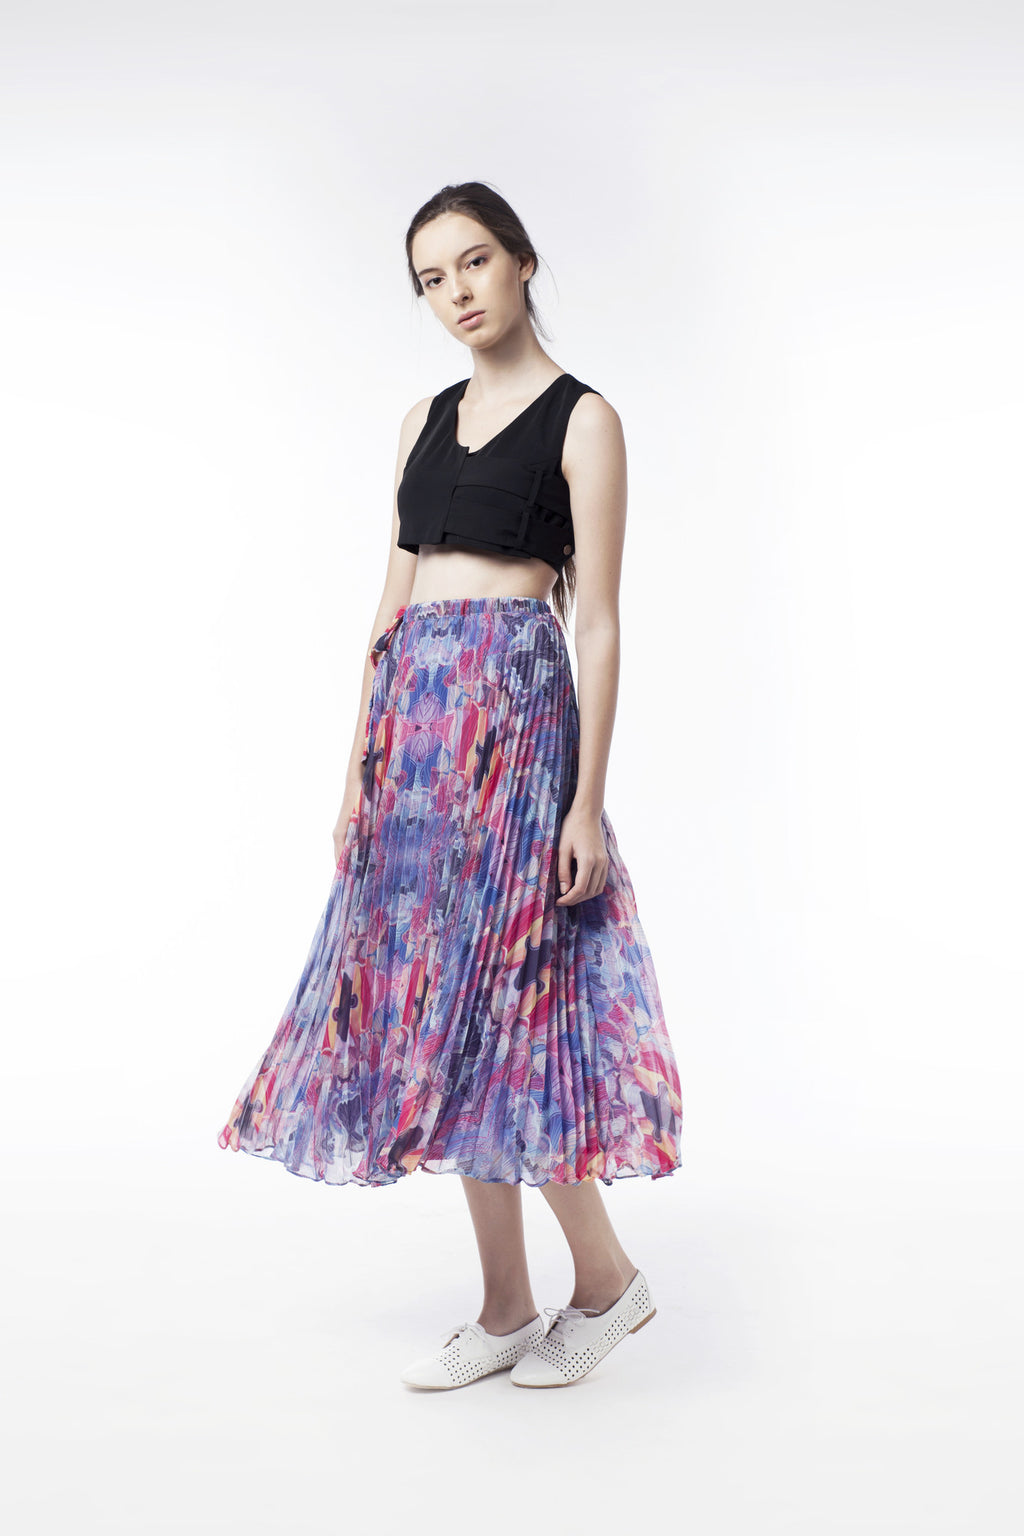 Kaleidoscopic Print Pleat Skirt - GlanceZ   - 1